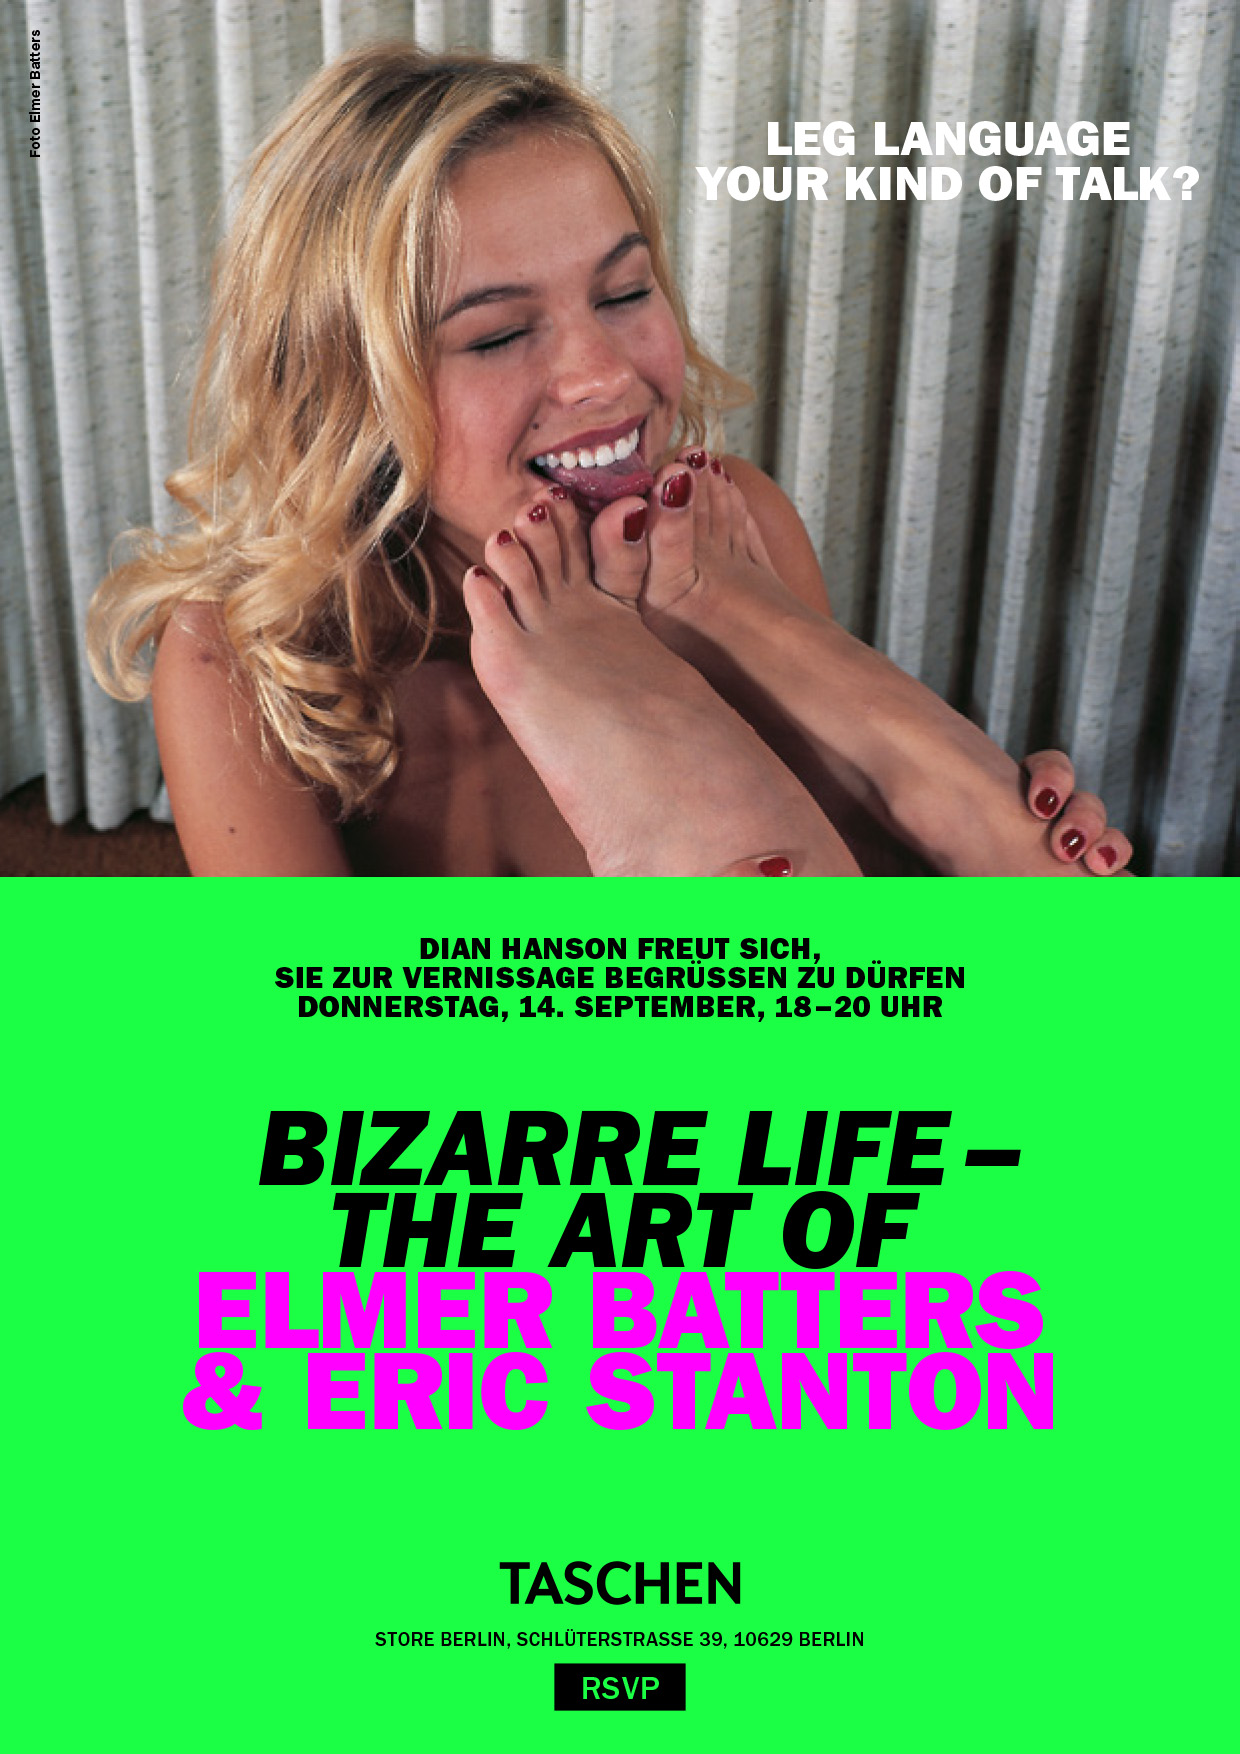 Vernissag am 14. September: Bizzarre Life - The Art of Elmer Batters & Eric Staton